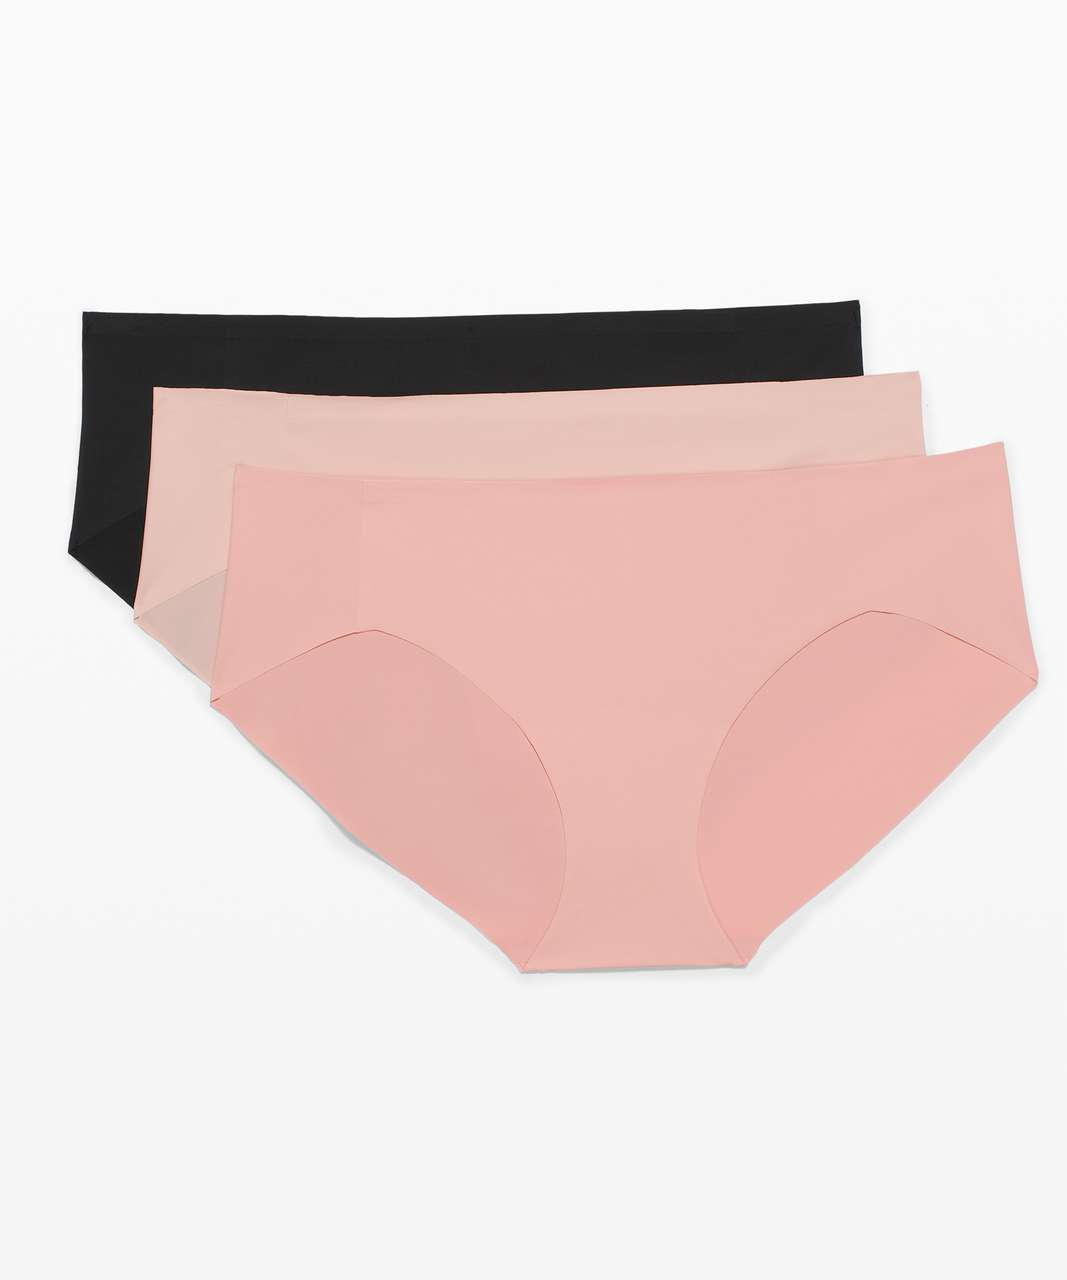 Lululemon Smooth Seamless Hipster 3 Pack - Black / Misty Shell / Pink Puff